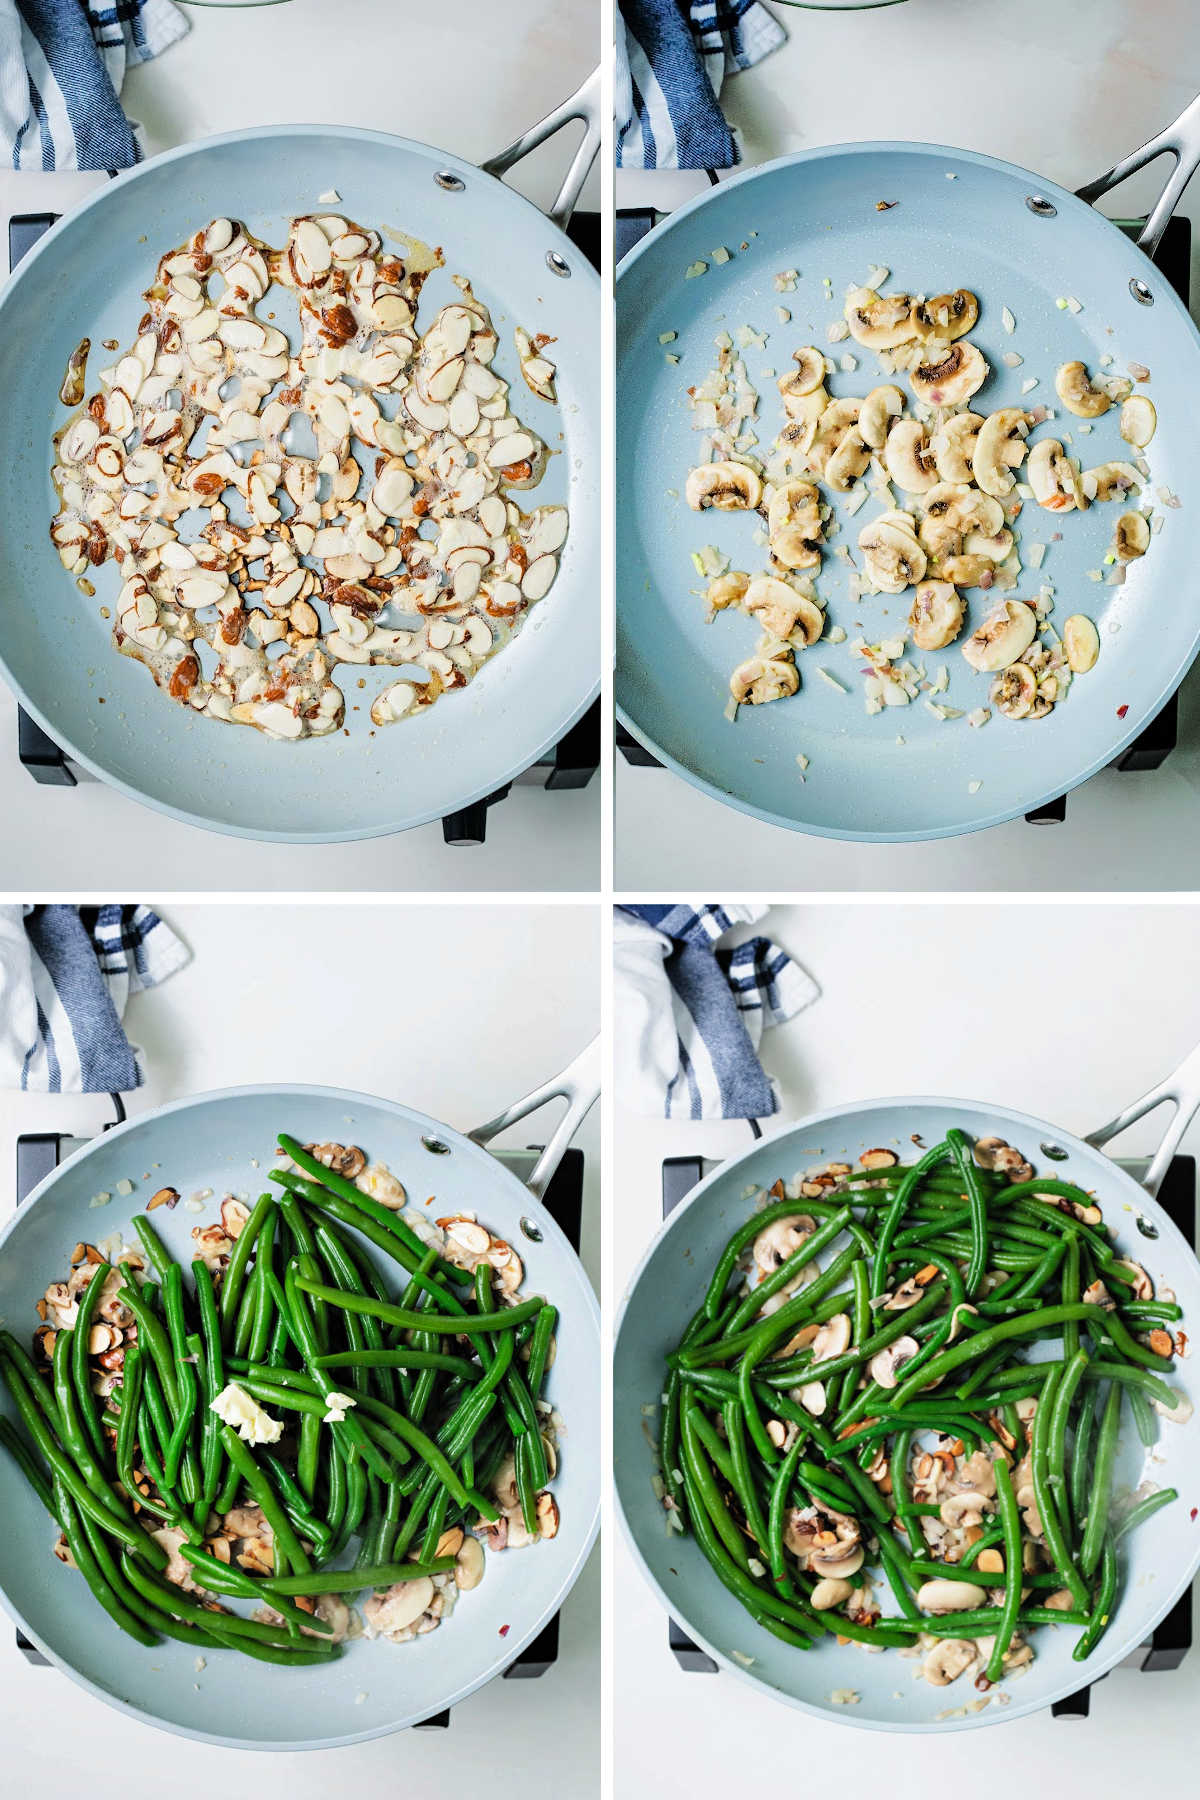 process steps for making green beans almondine: saute almonds in butter; saute shallots and mushrooms; add blanched green beans; stir in toasted almonds.